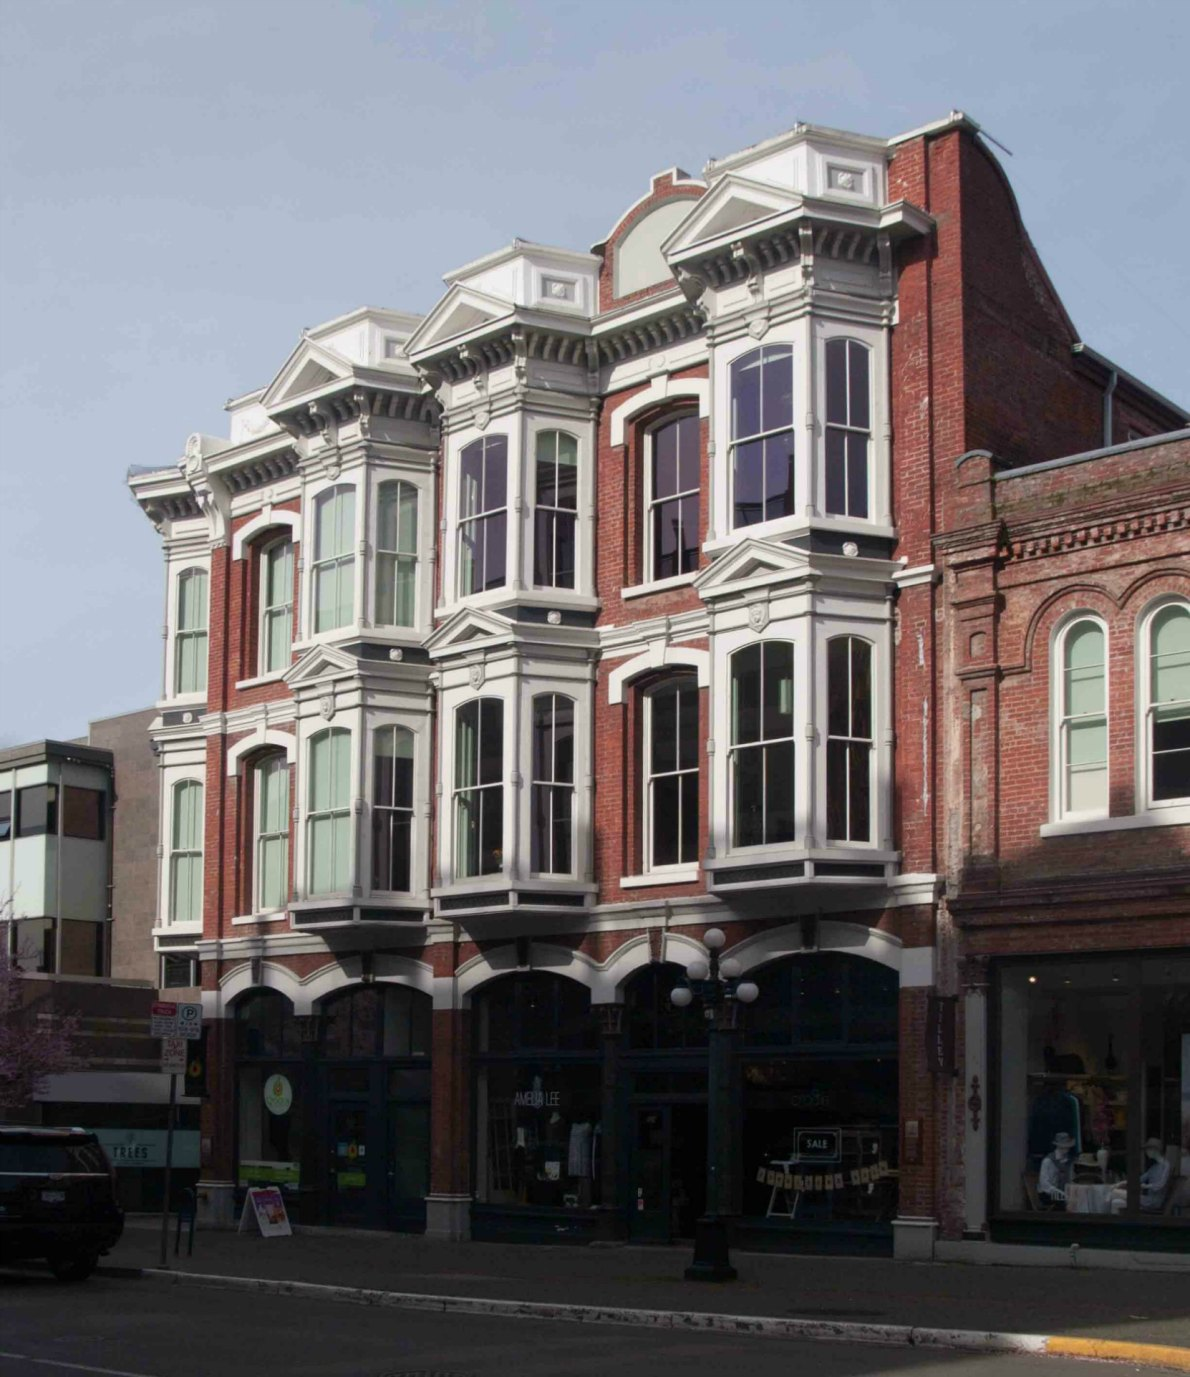 550-554 Yates Street, originally built in 1883 as the Oriental Hotel